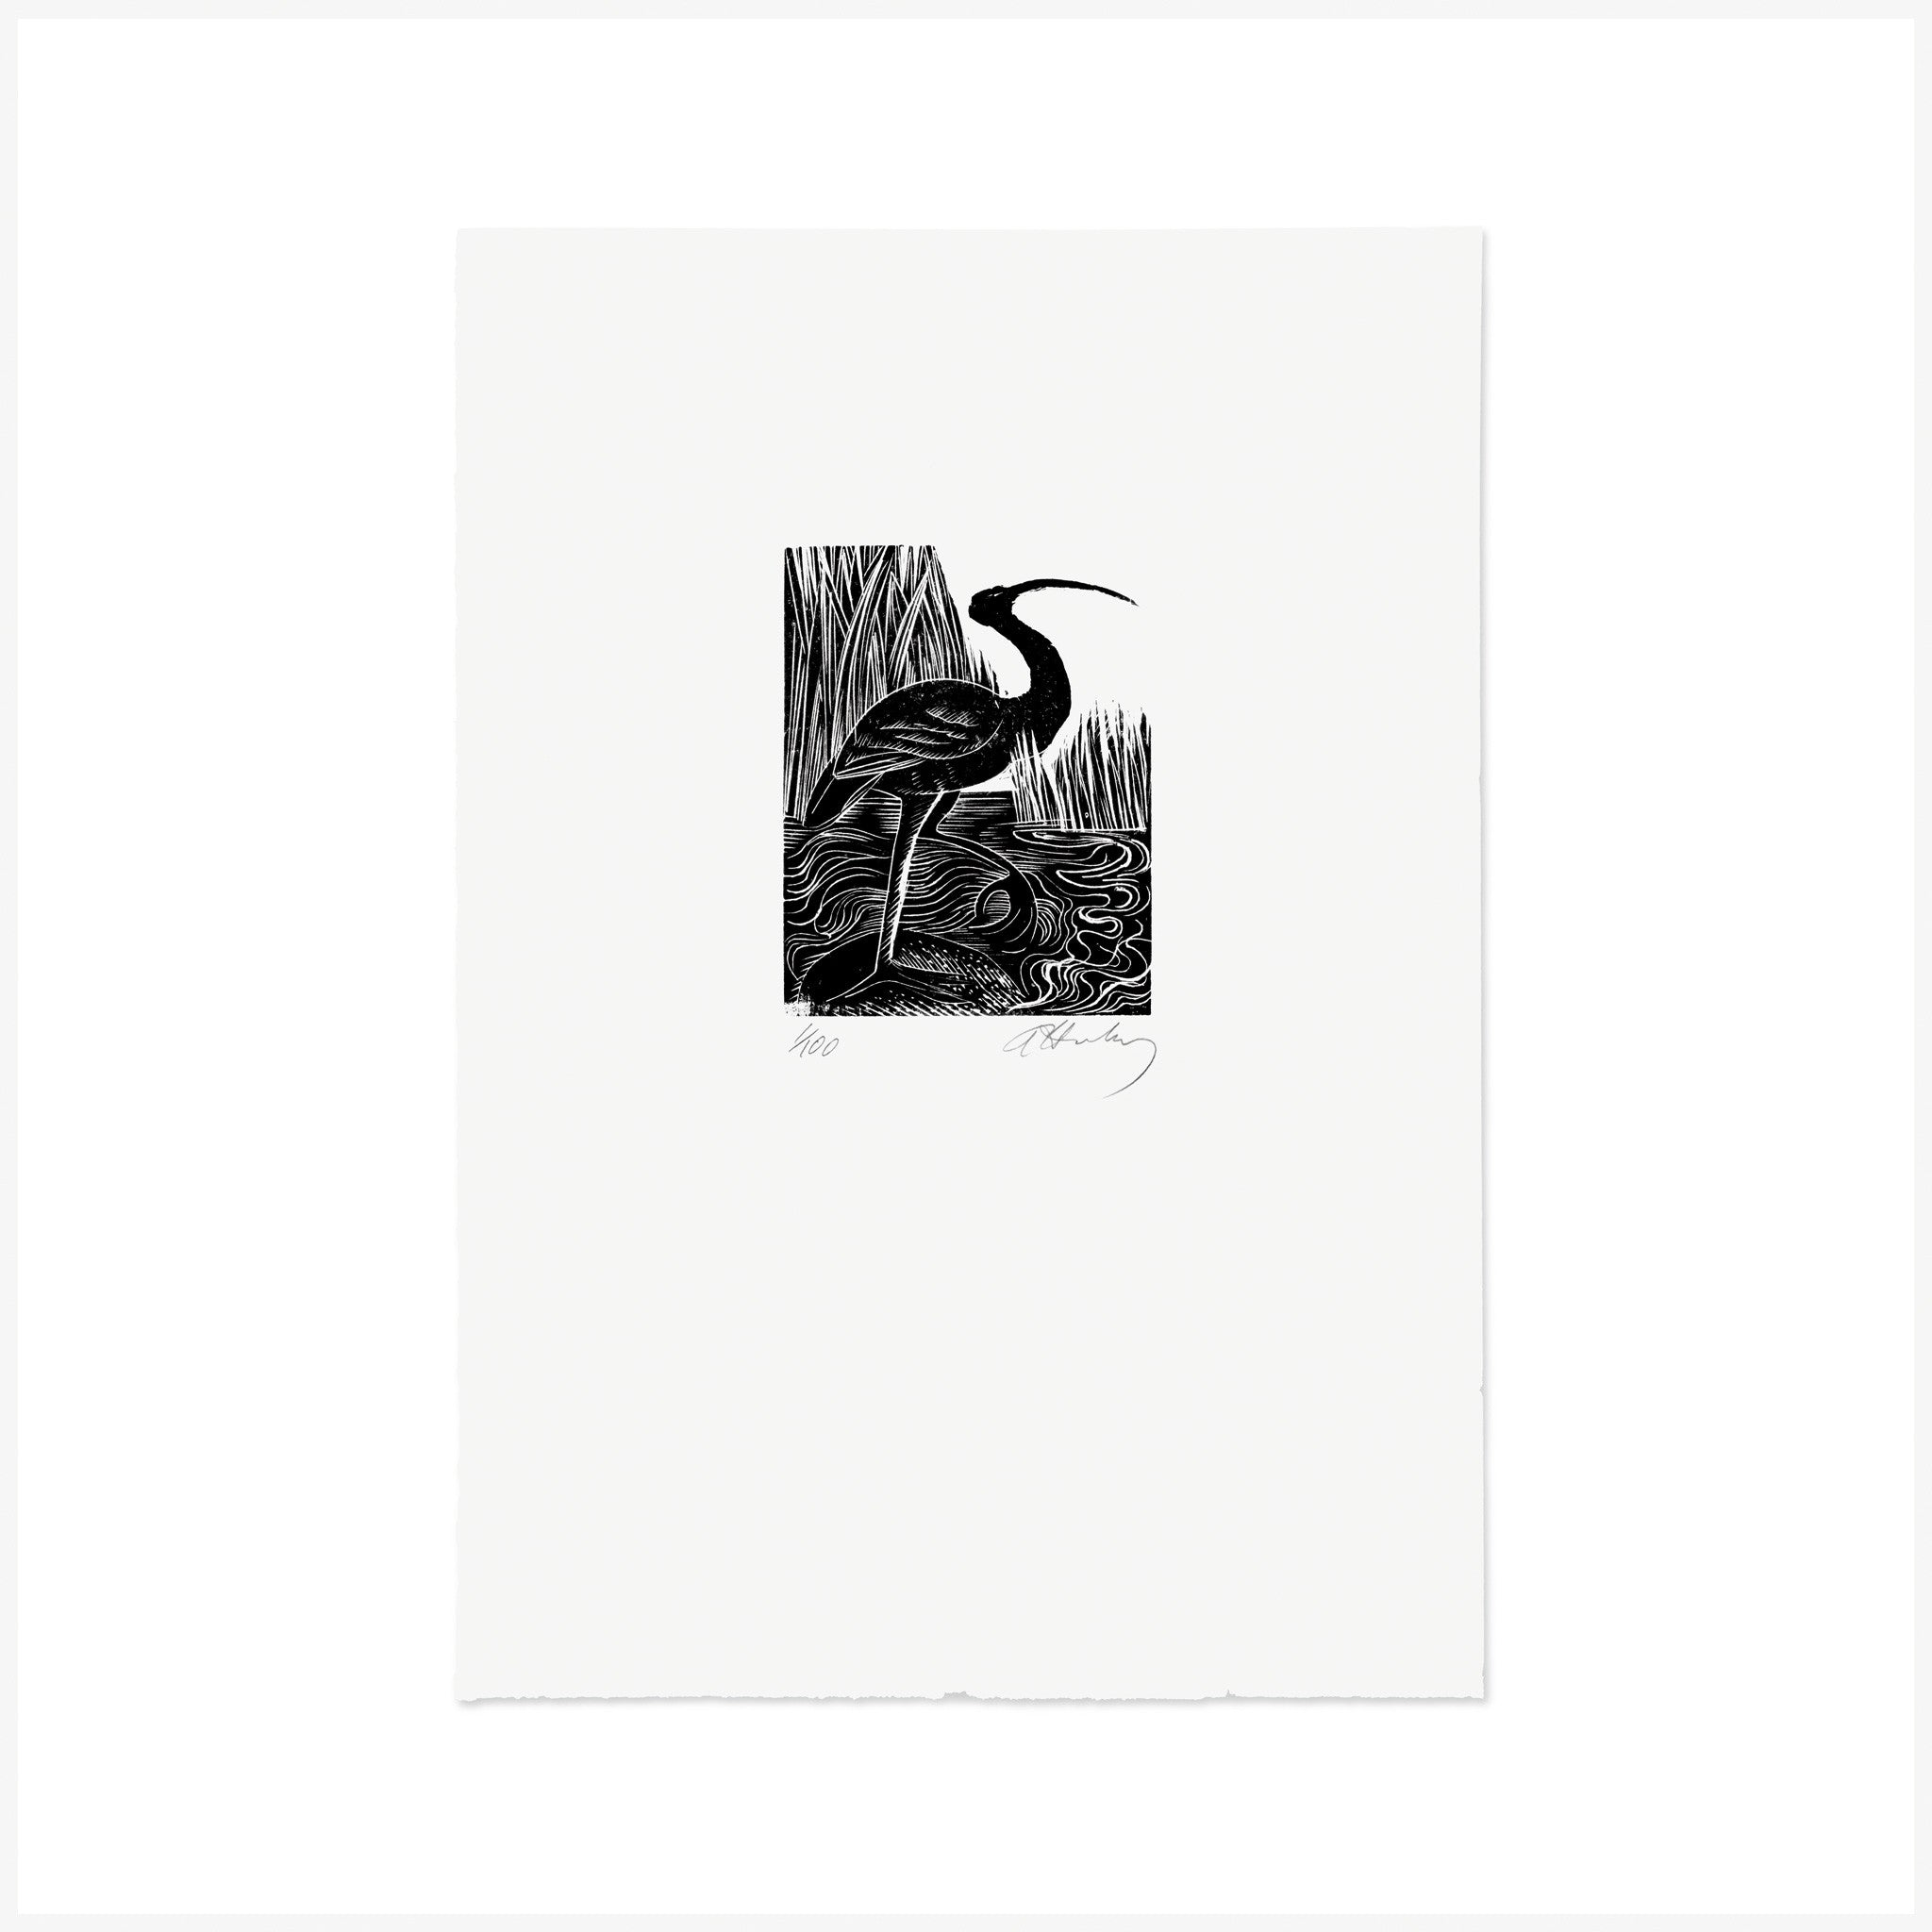 I is for ibis - Wood Engraving - Angela Harding